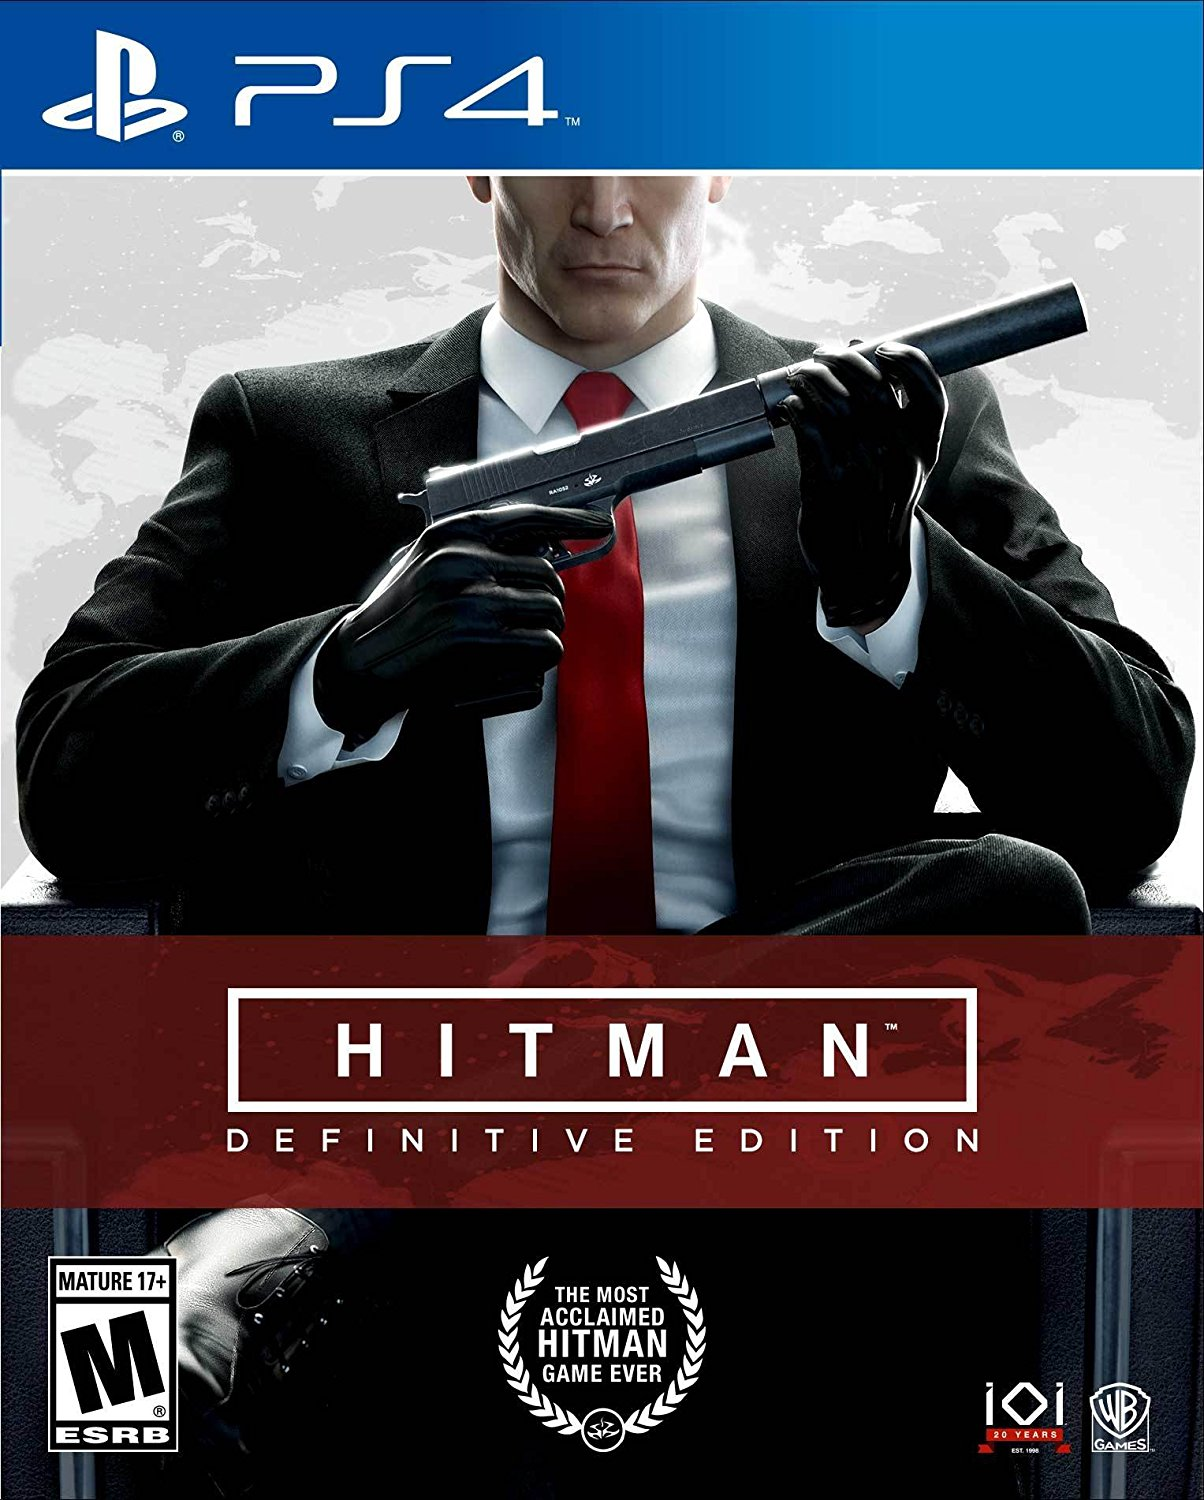 hitman 2 ps4 cover